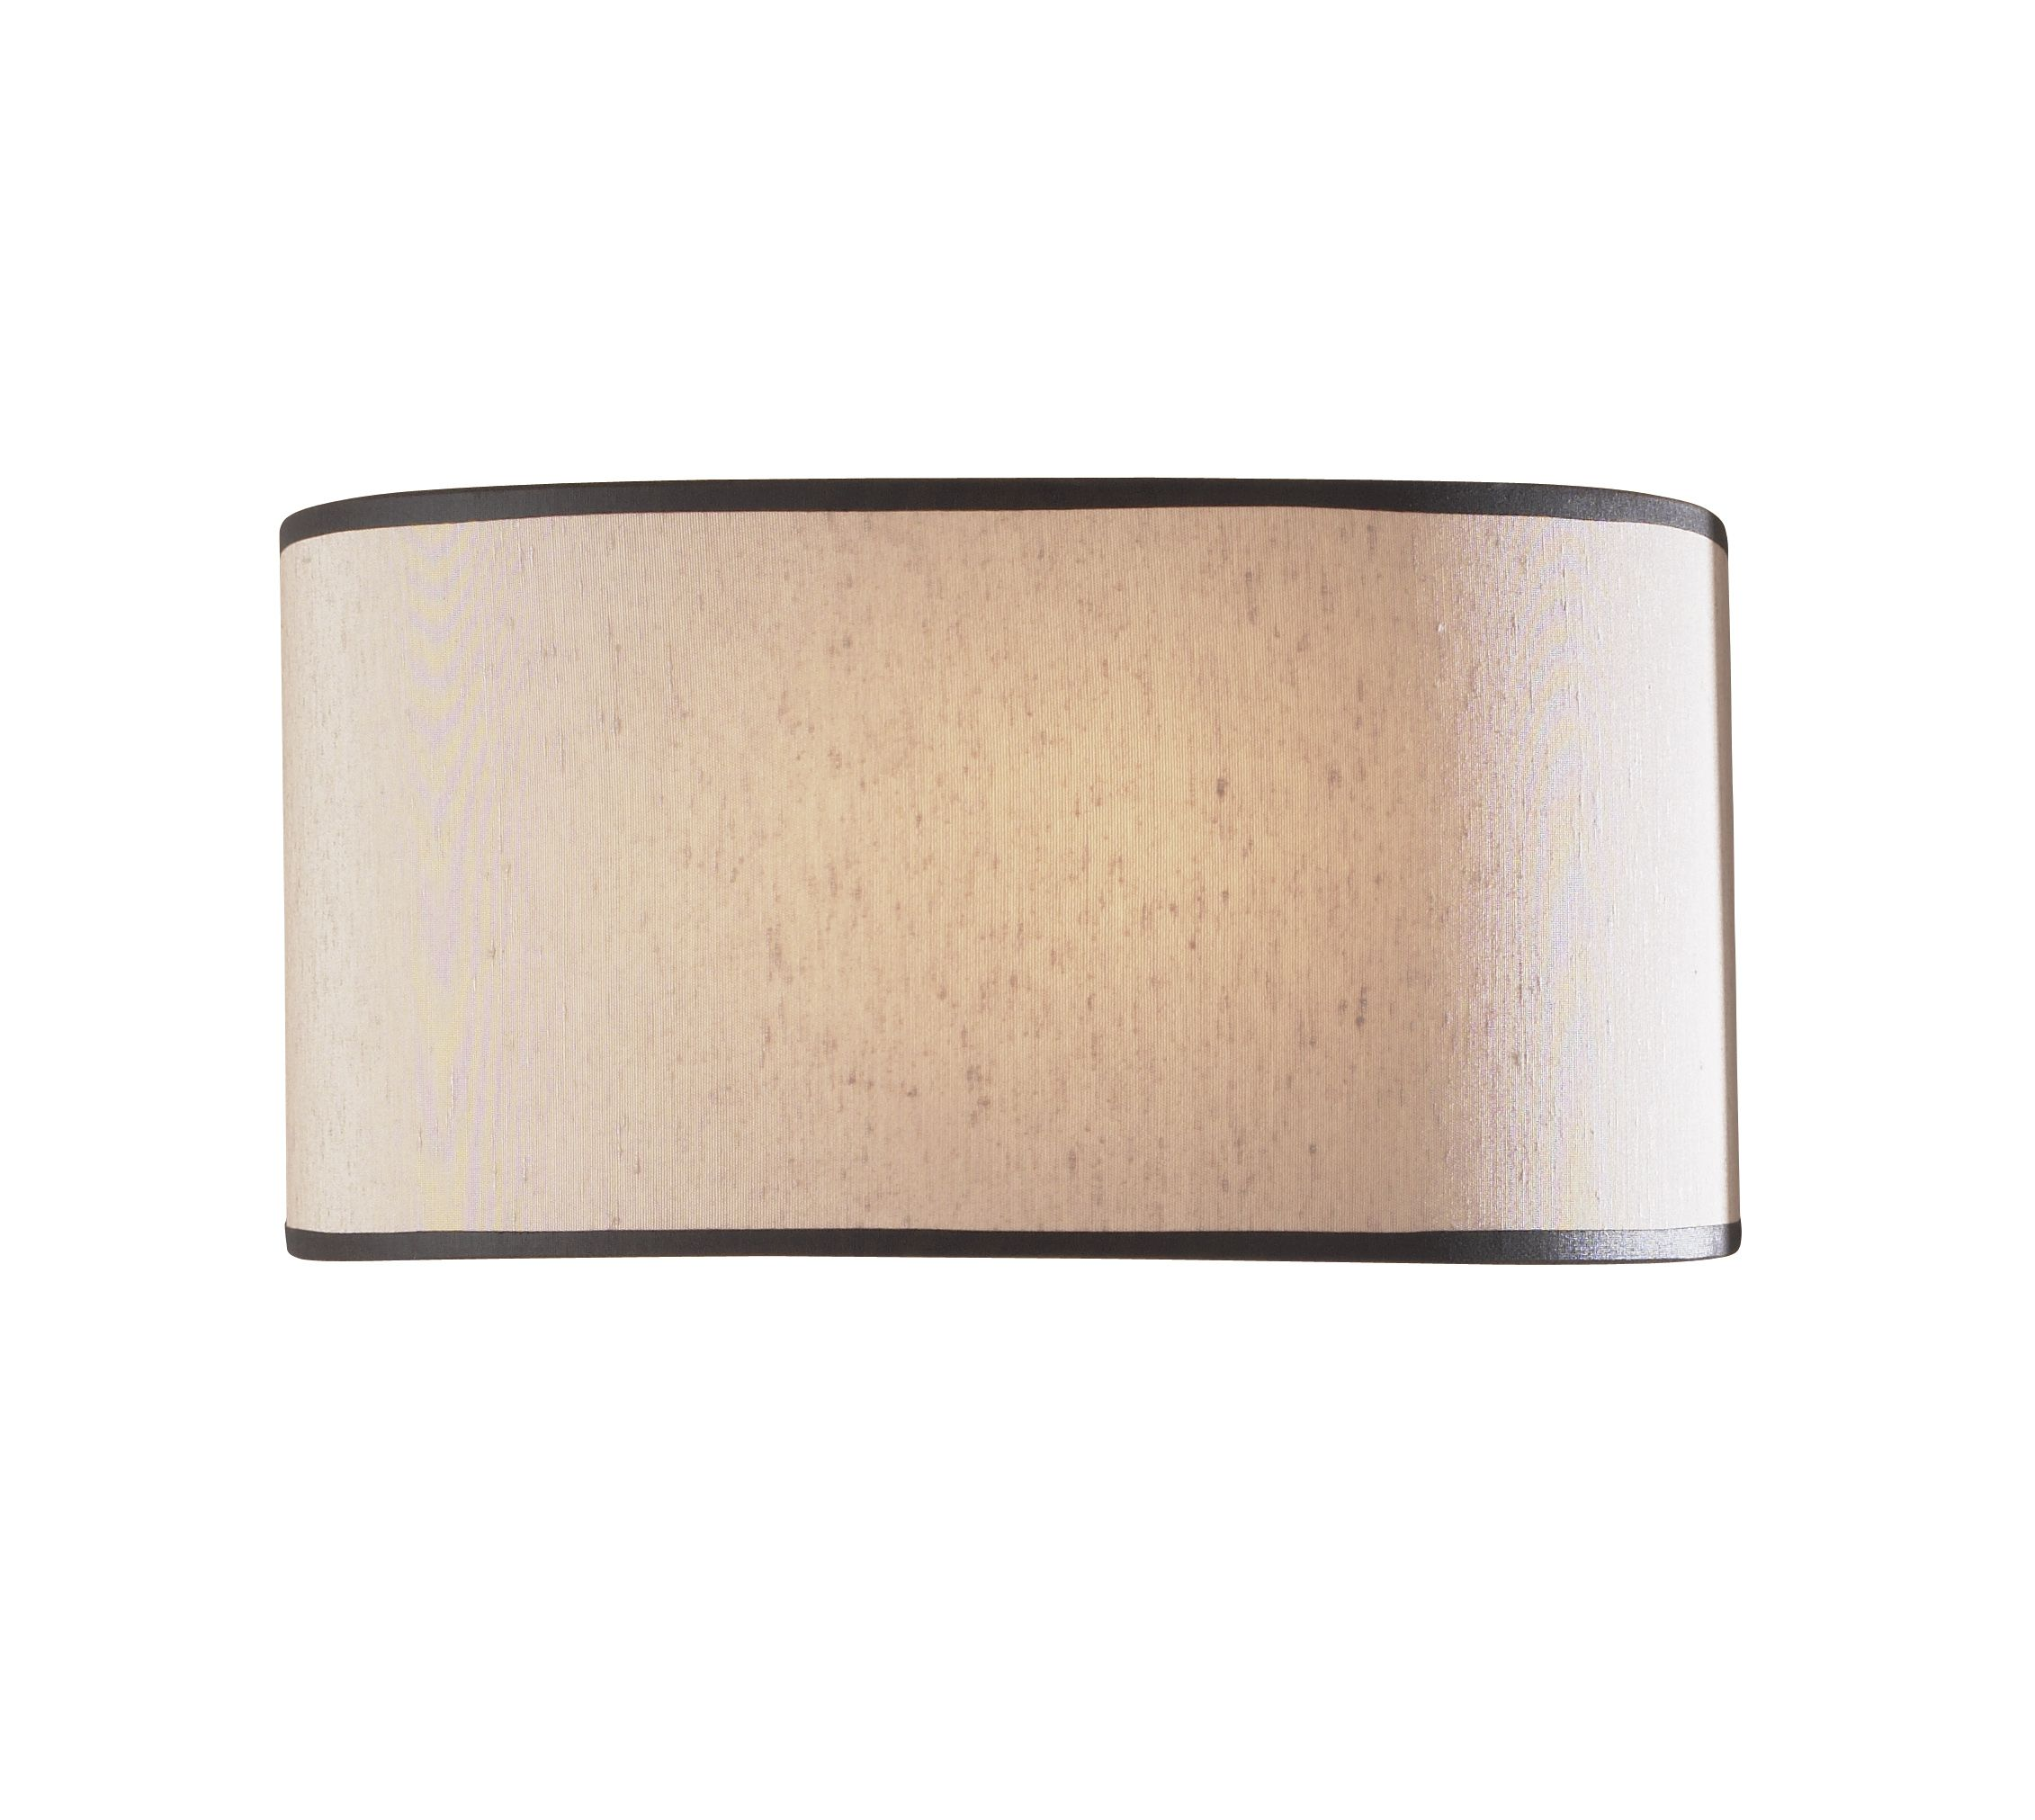 Double Insulated Class 2 Wall Lights : Ascott 1-light Beige shade Finish Wall Light ASC071 Class 2 Double Insulated